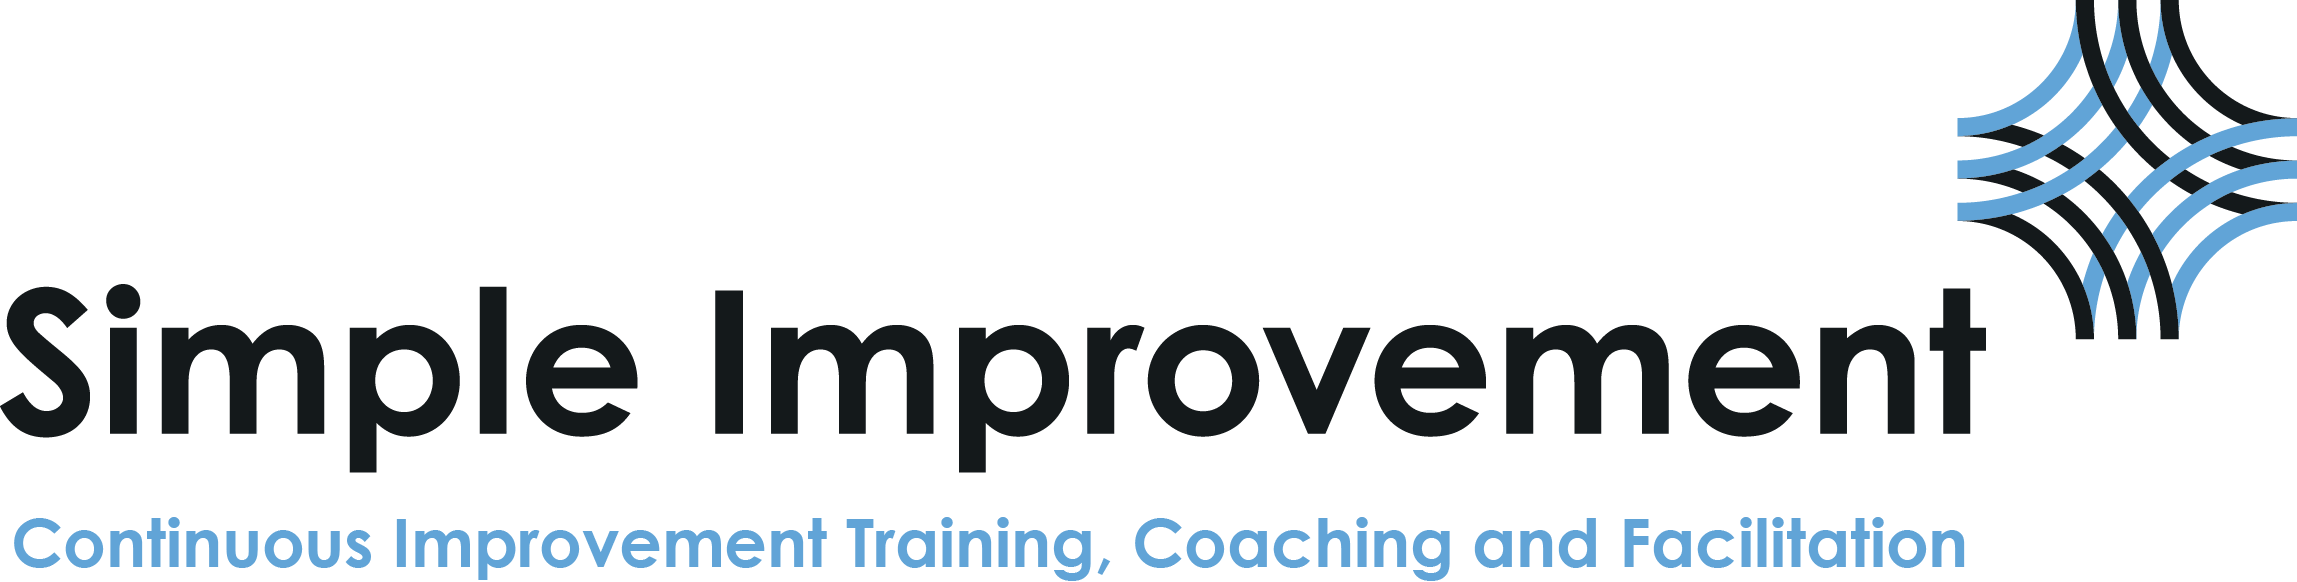 Simple Improvement logo